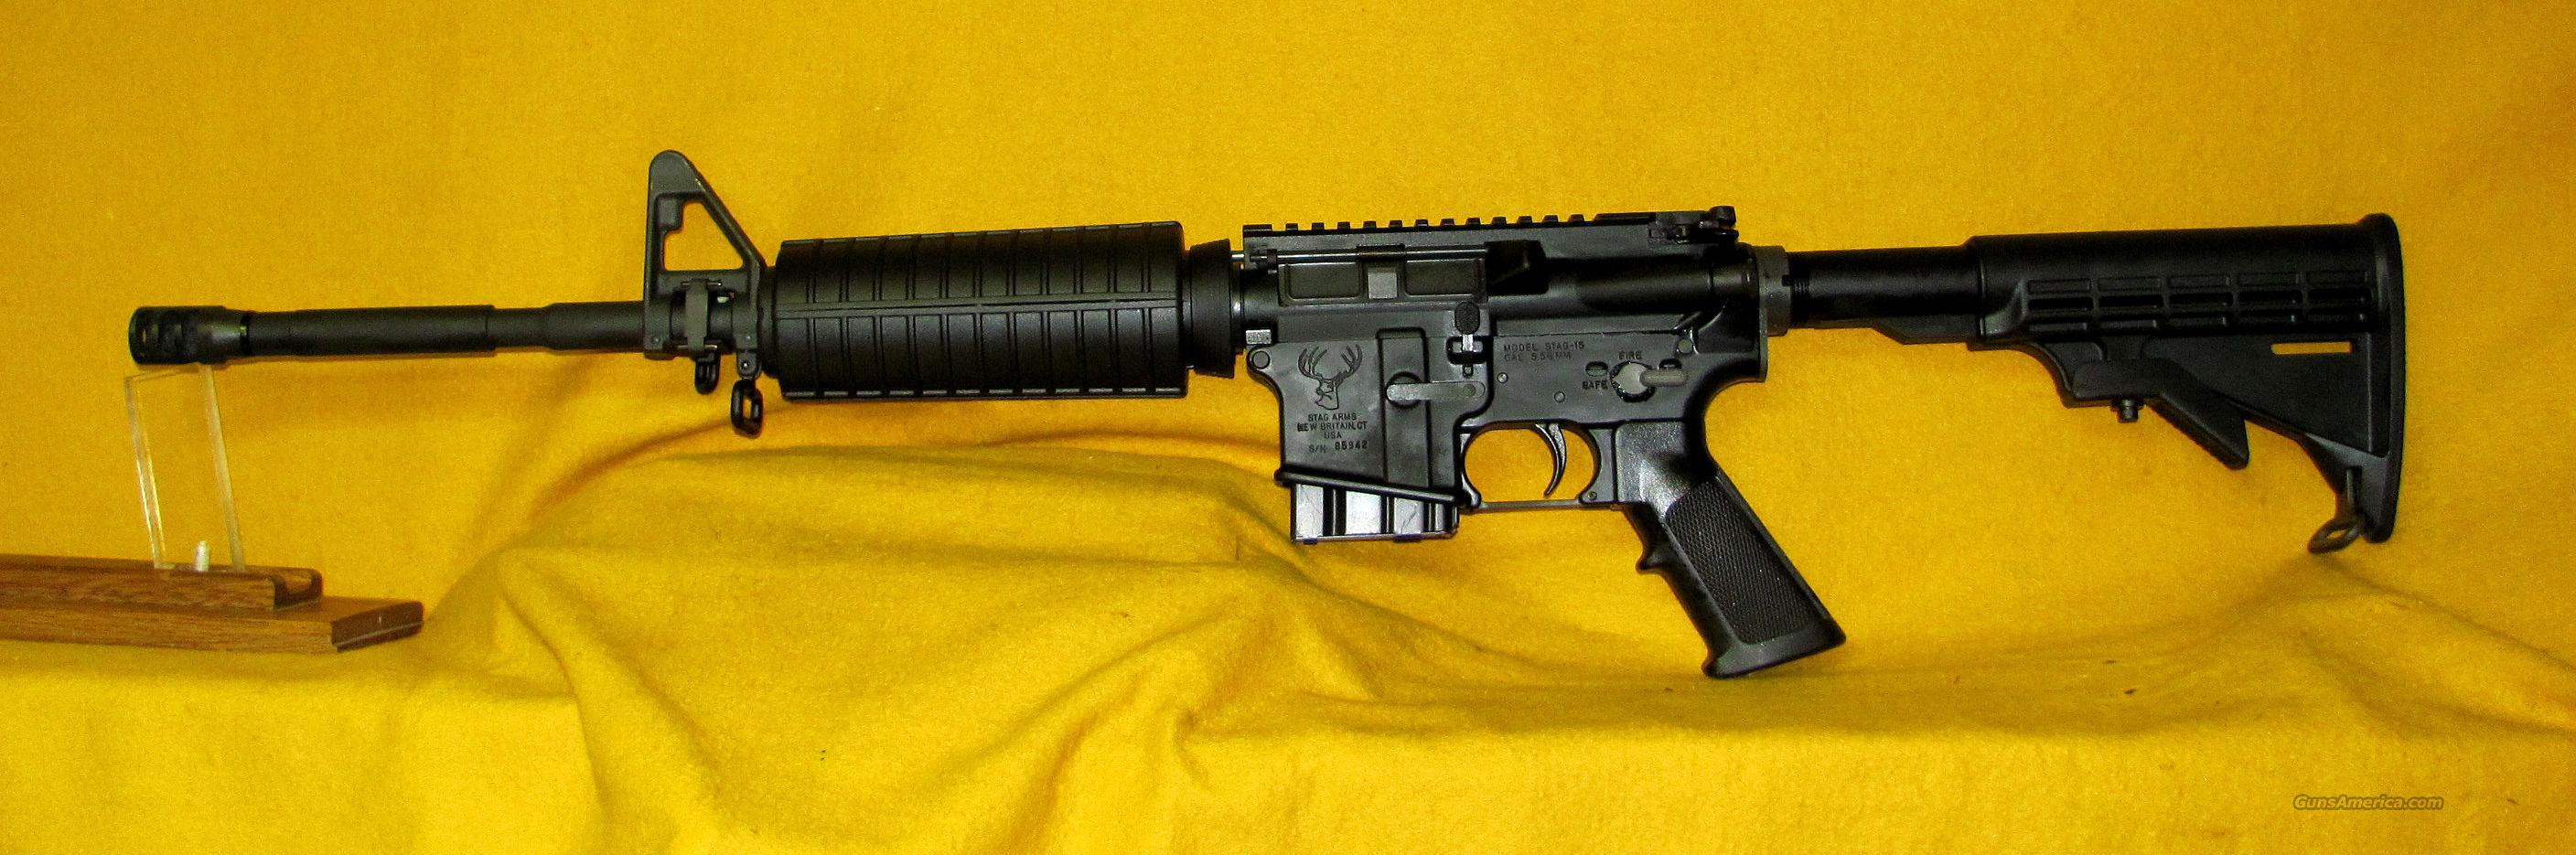 STAGARMS AR-15  Guns > Rifles > Stag Arms > Complete Rifles